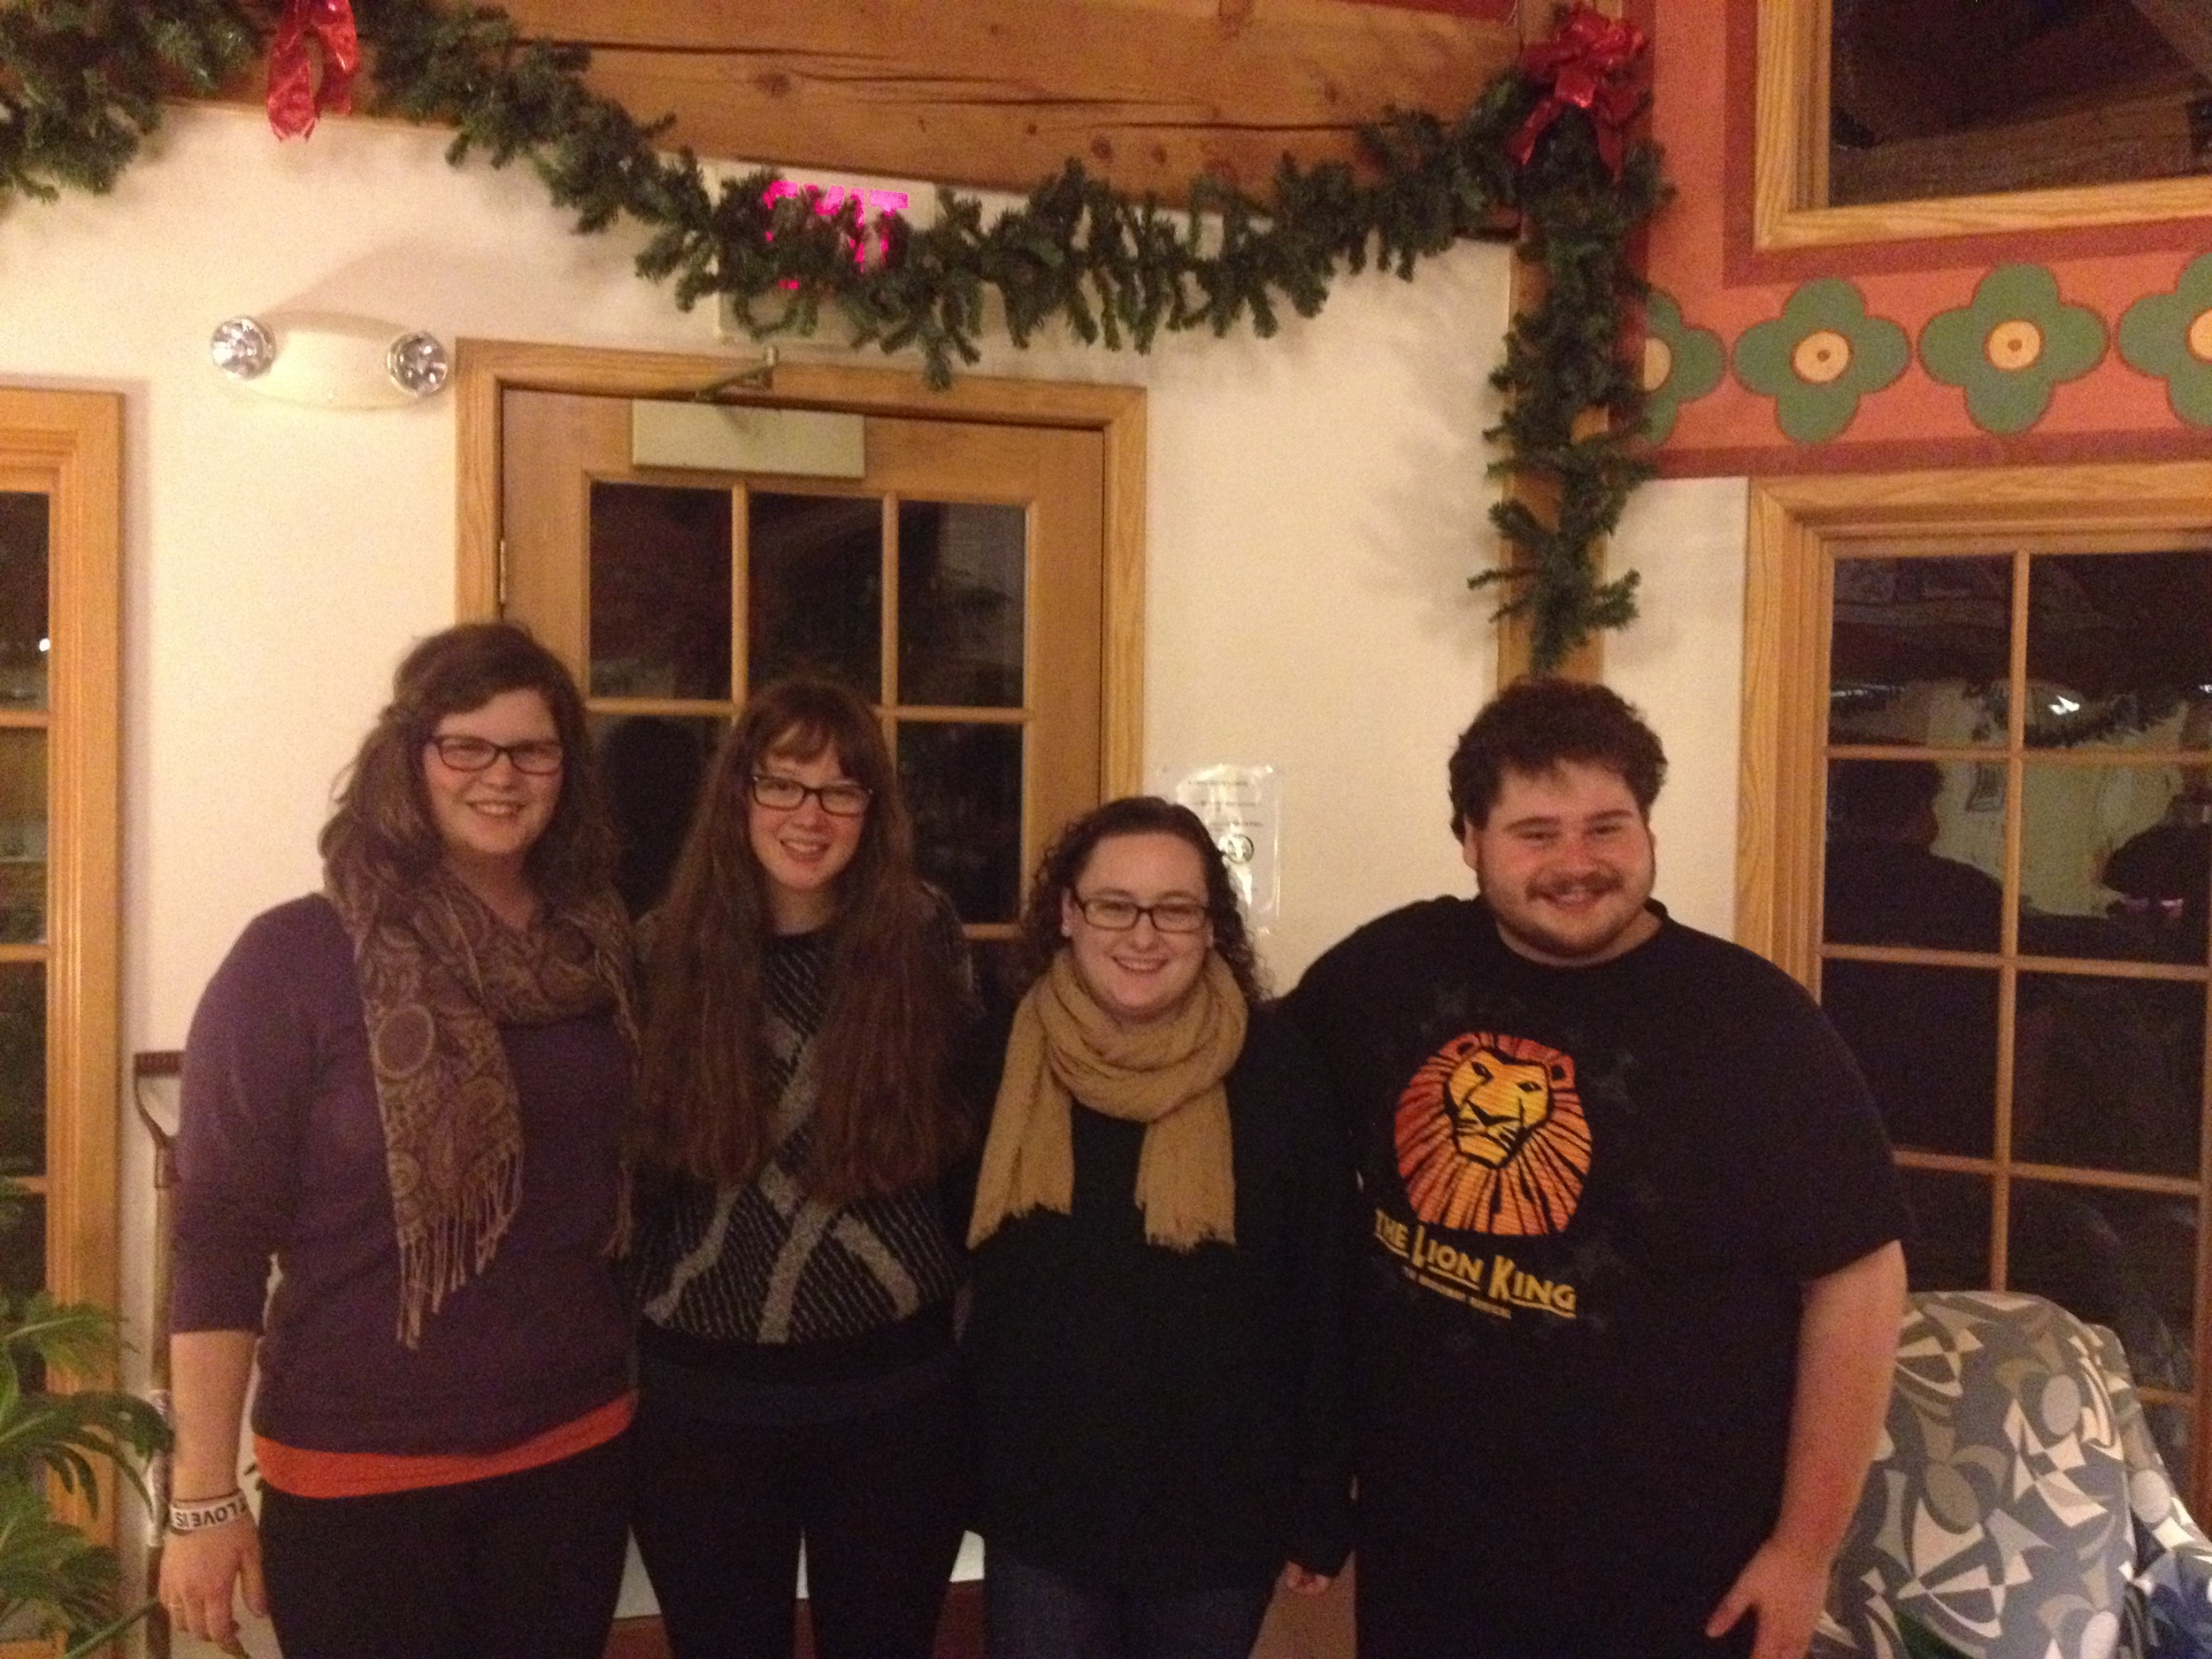 The blogging team: Abi, Portia, Jessica, and Matt